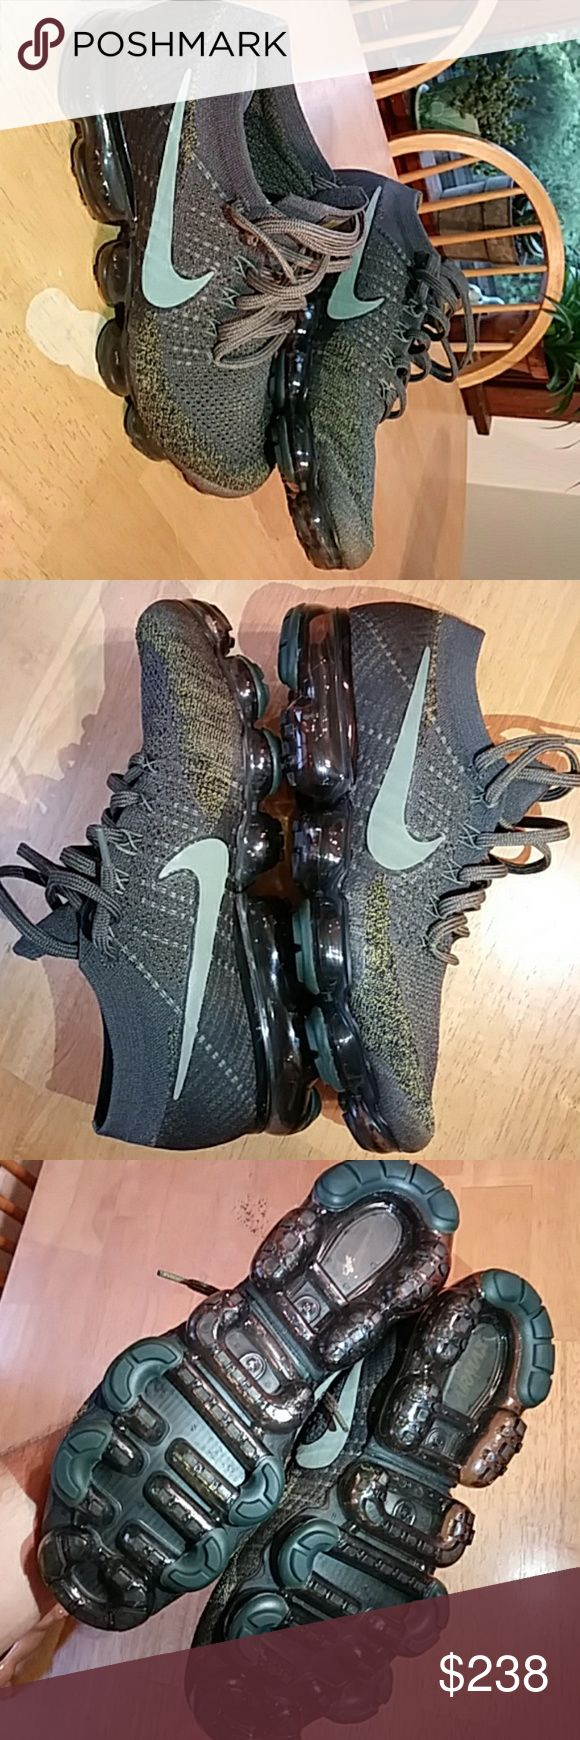 BRAND NEW NIKE✔AIR VaporMAX™Cargo Khaki M🎁10.5 BRAND NEW, UNWORN, DEADSTOCK in original box 📦. GREAT 🎅XMAS🎄 GIFT FOR BOO❤🎁Army green/desert brown/khaki tan flyknit upper. Sweet Reflective 3M green/silver tinted✅swoosh✔. Stock, solid army green laces. Extra khaki/army green laces included (1 of each in the shoes pictured). I love them but they are just a tad too snug. I had to cop because you can't find this colorway anywhere! Go ahead and try 😉. Accepting best offer, will consider…